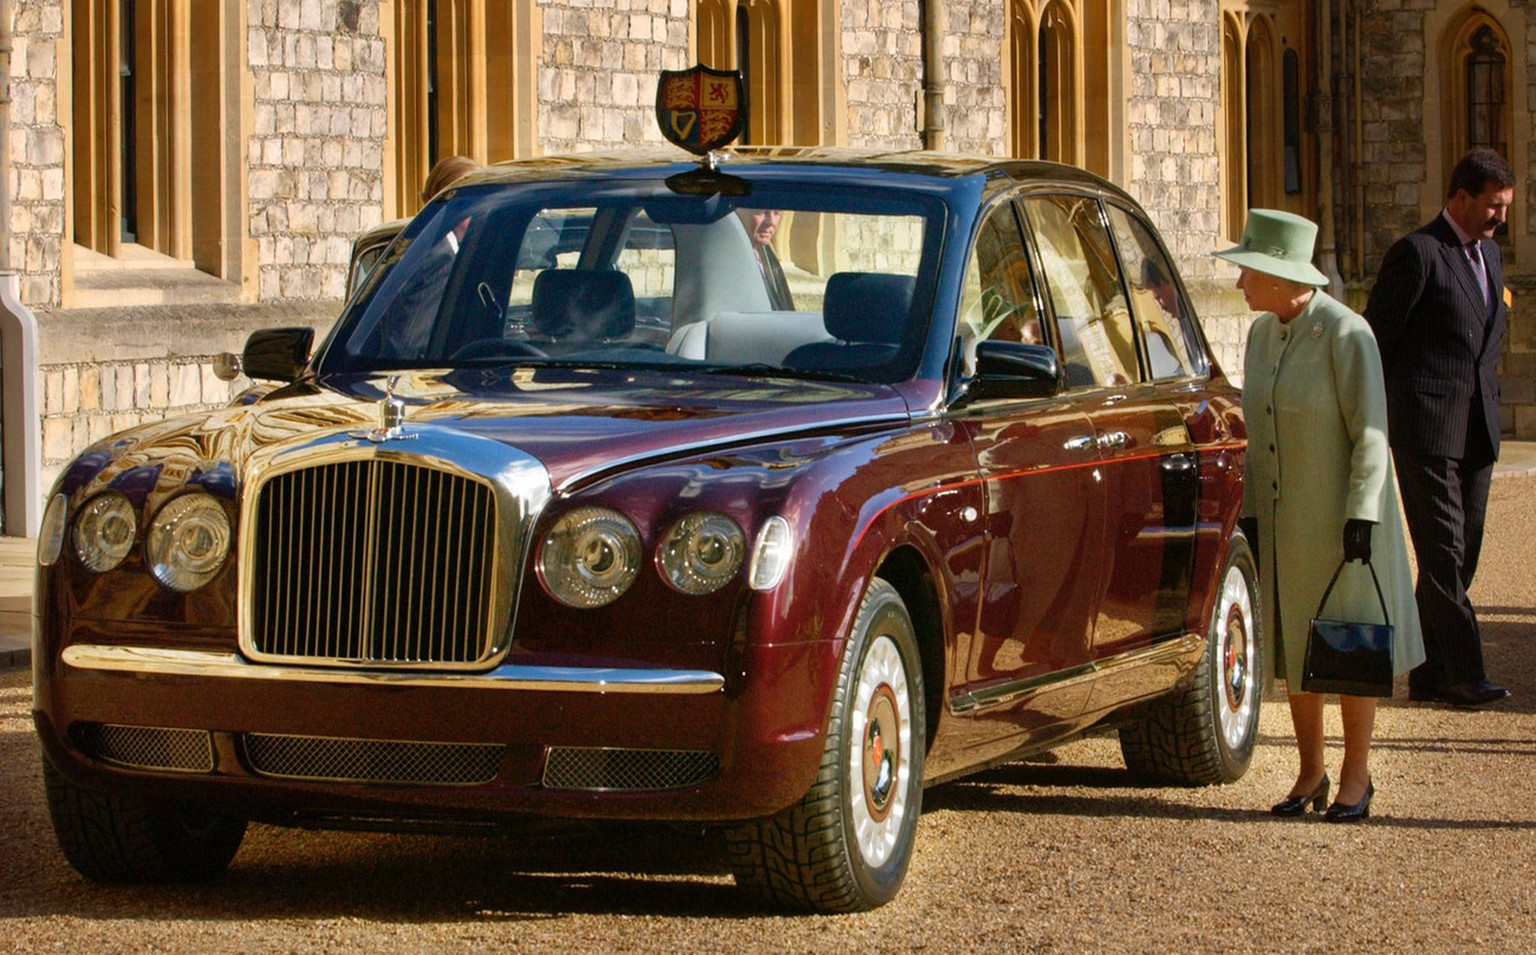 Britain's Queen Elizabeth  stands beside the new Bentley state limousine at Windsor, southern  England, after it was presented to her Wednesday May 29, 2002.  The Bentley in claret and black livery is a Golden Jubilee gift to The Queen from a British based business consortium.  Like the Queen's other official cars, this one has no registration number plate, and carries her personal Coat of Arms at the front, on the roof of the car. (AP Photo / Fiona Hanson, PA) ** UNITED KINGDOM OUT - MAGAZINES OUT -  **